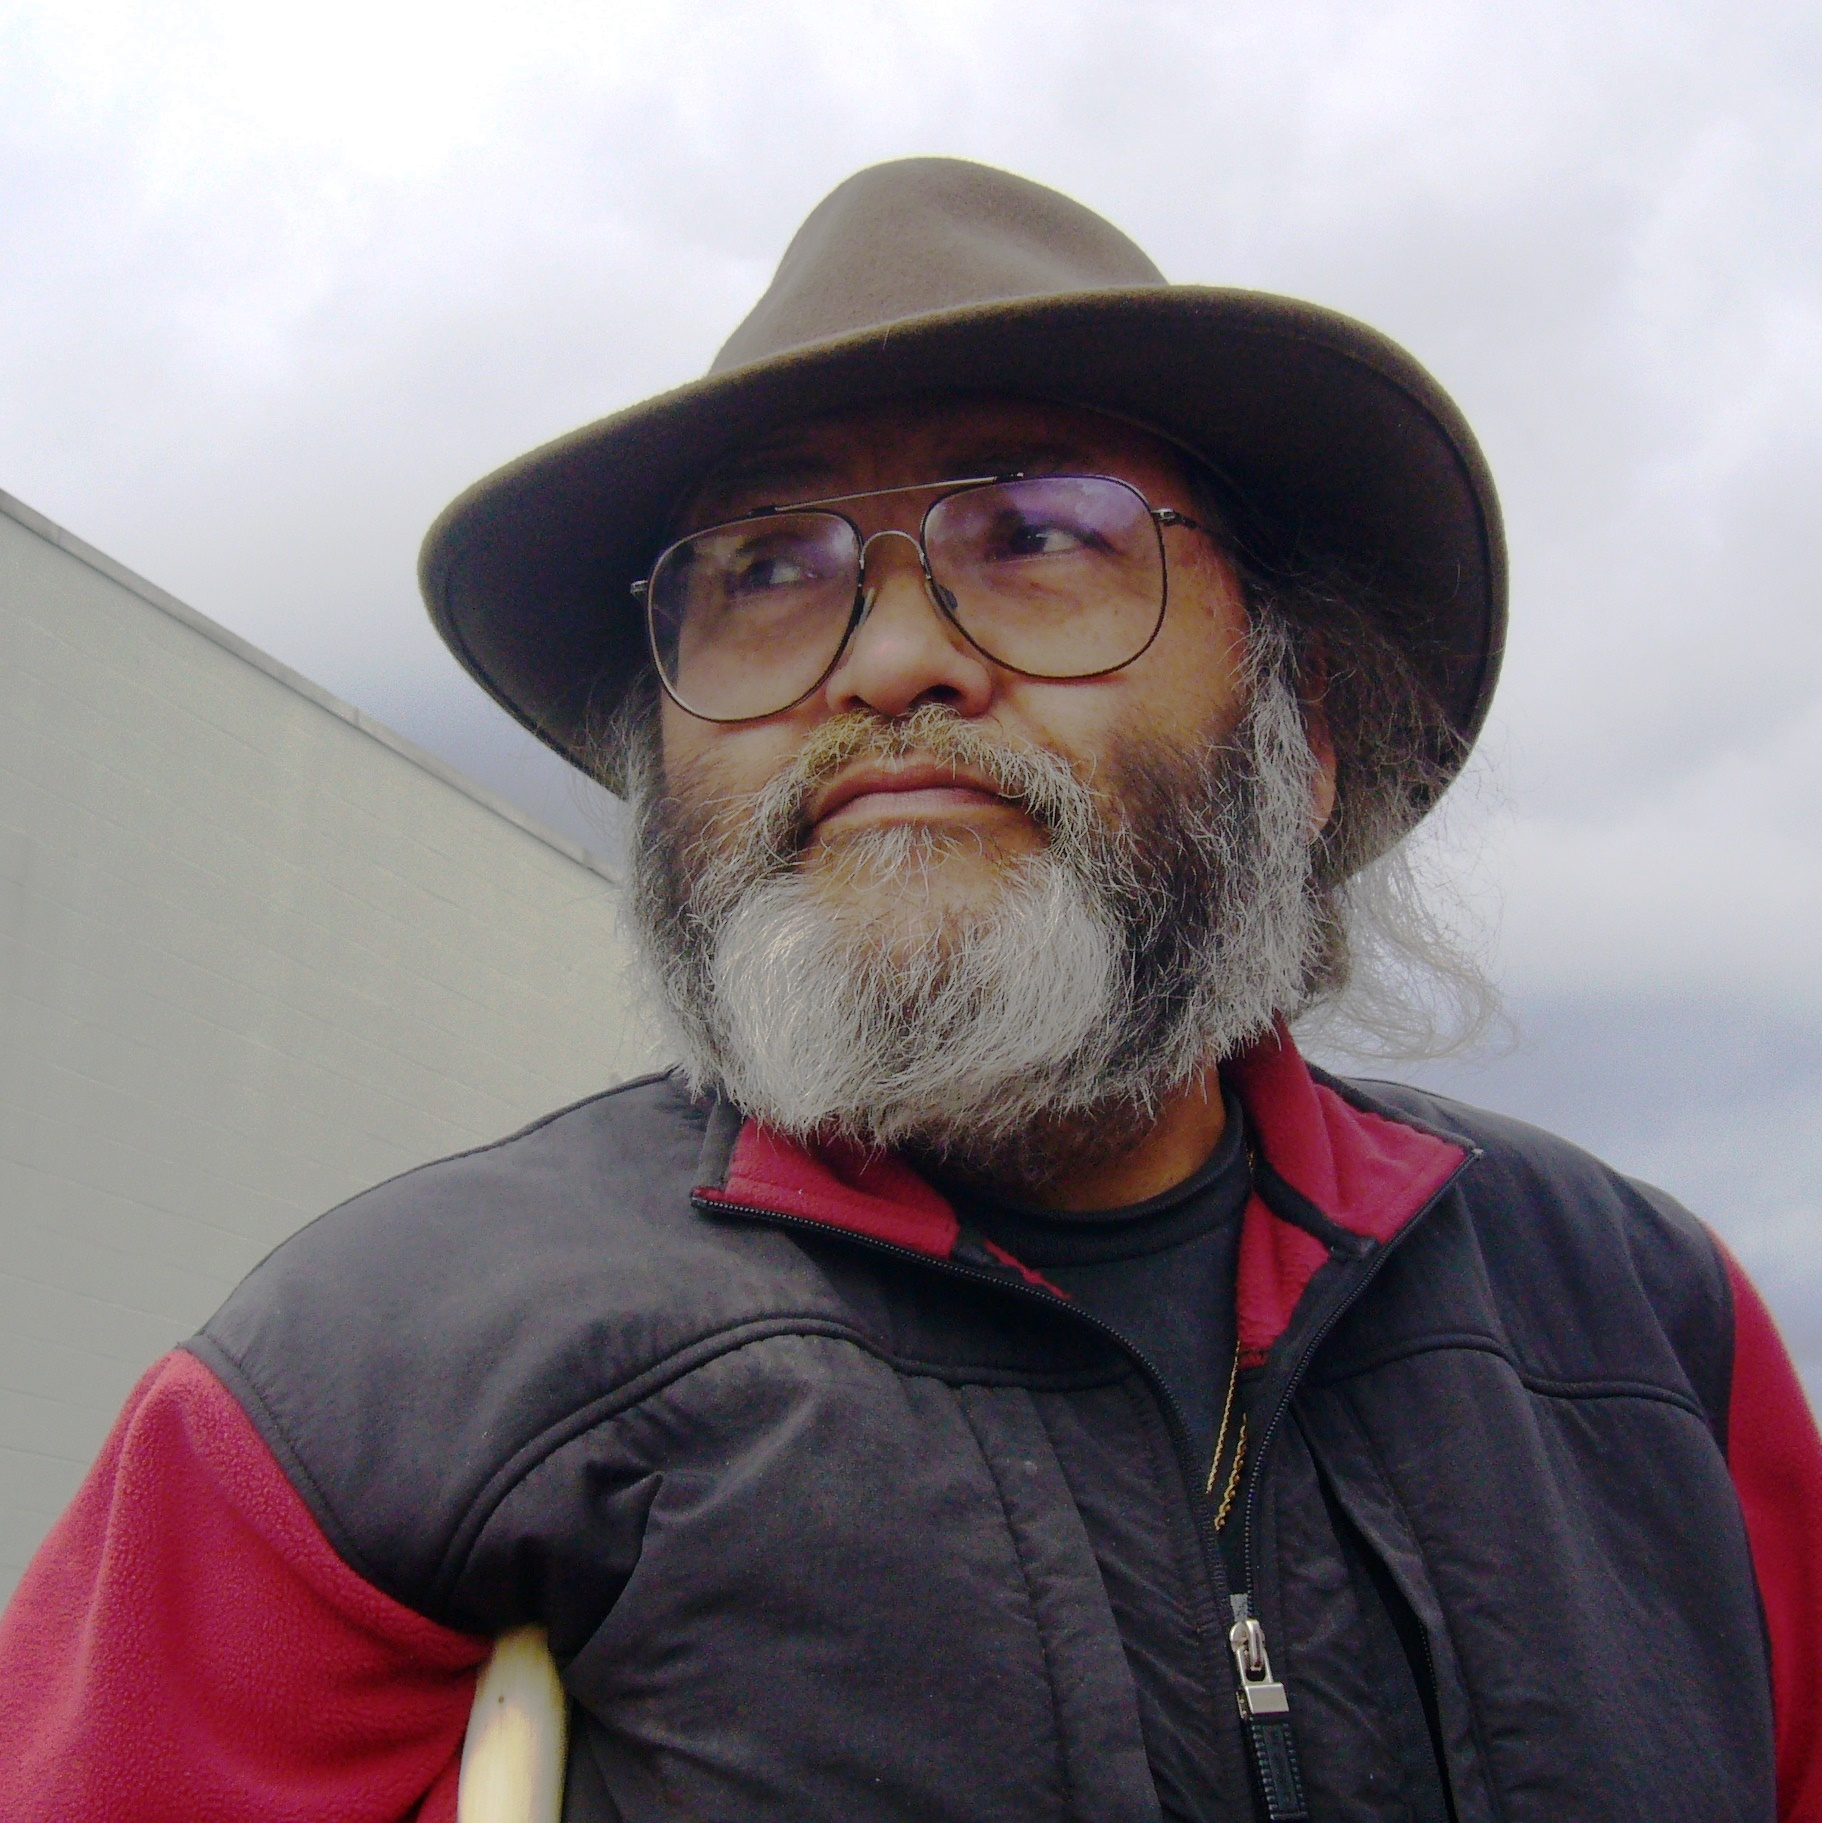 John Littlefield's legacy: Teaching subsistence as advocacy